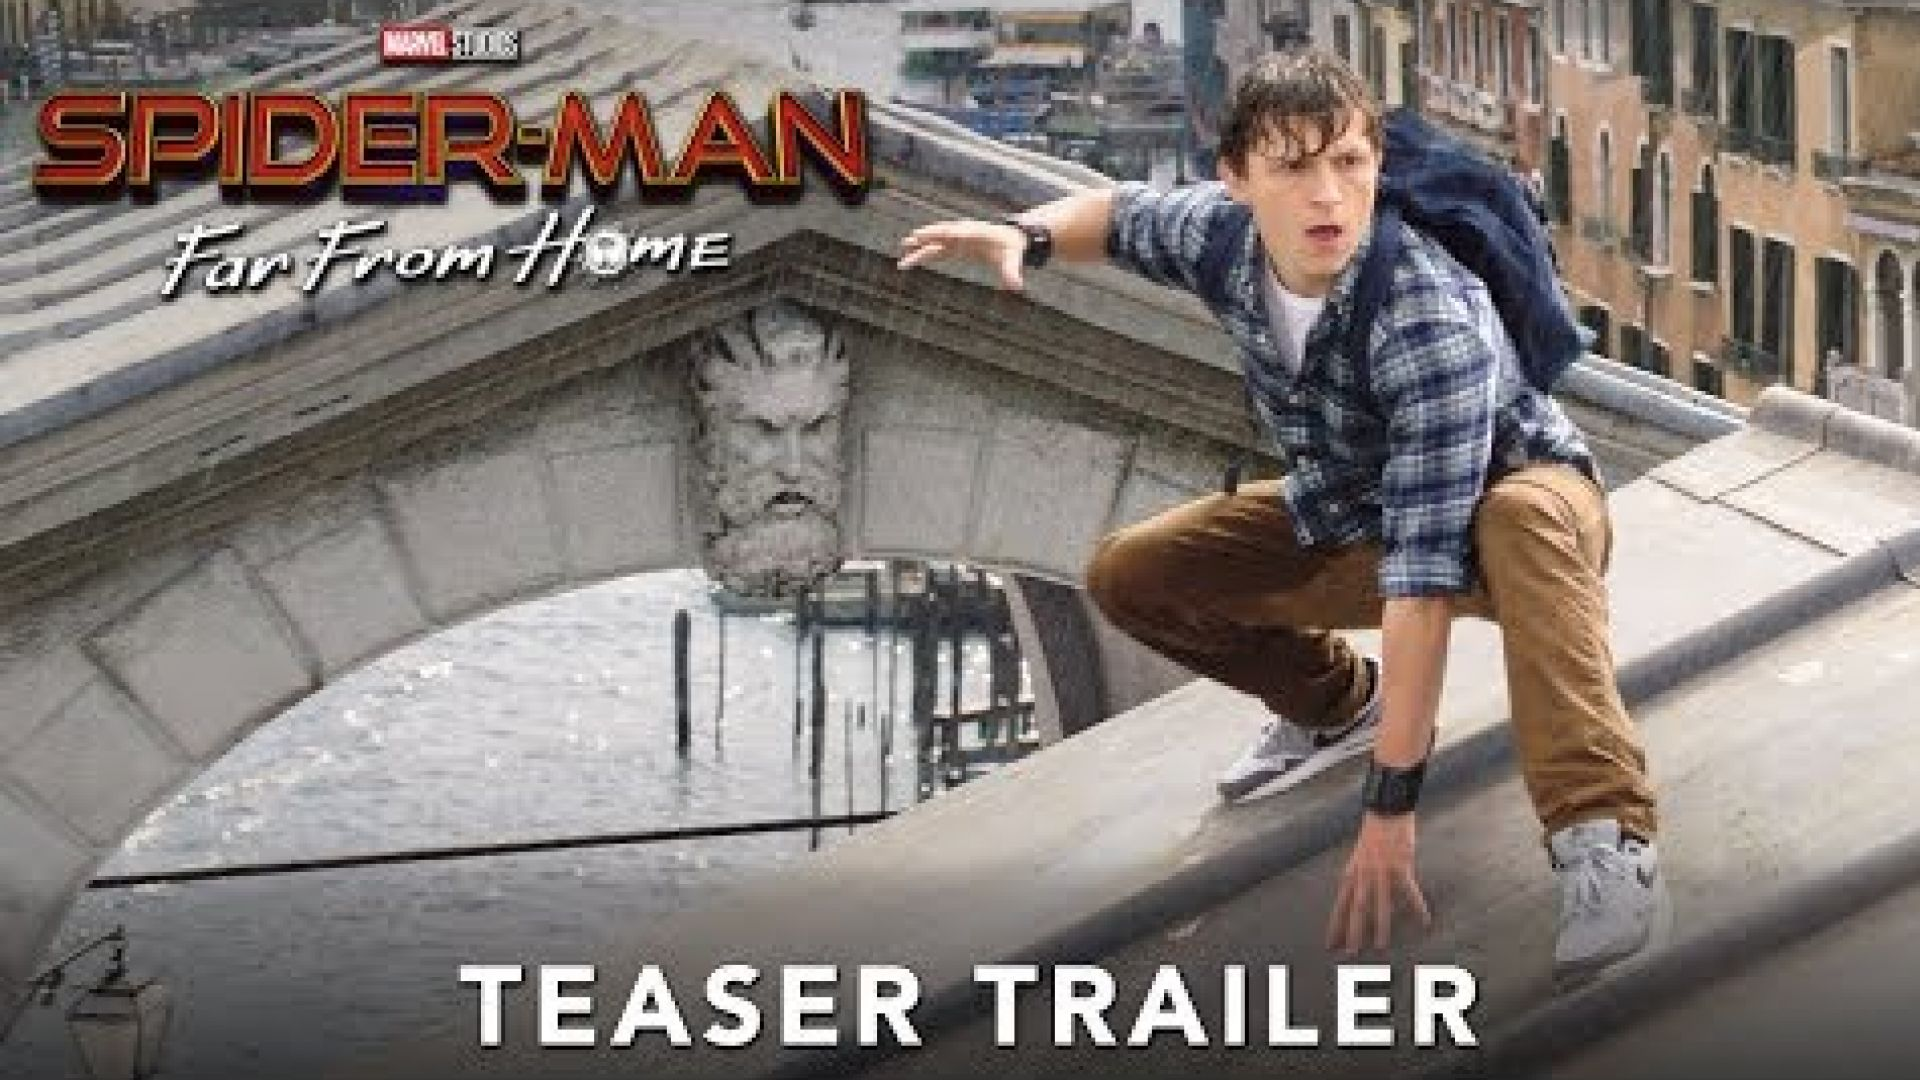 'Spider-Man: Far From Home' Teaser Trailer